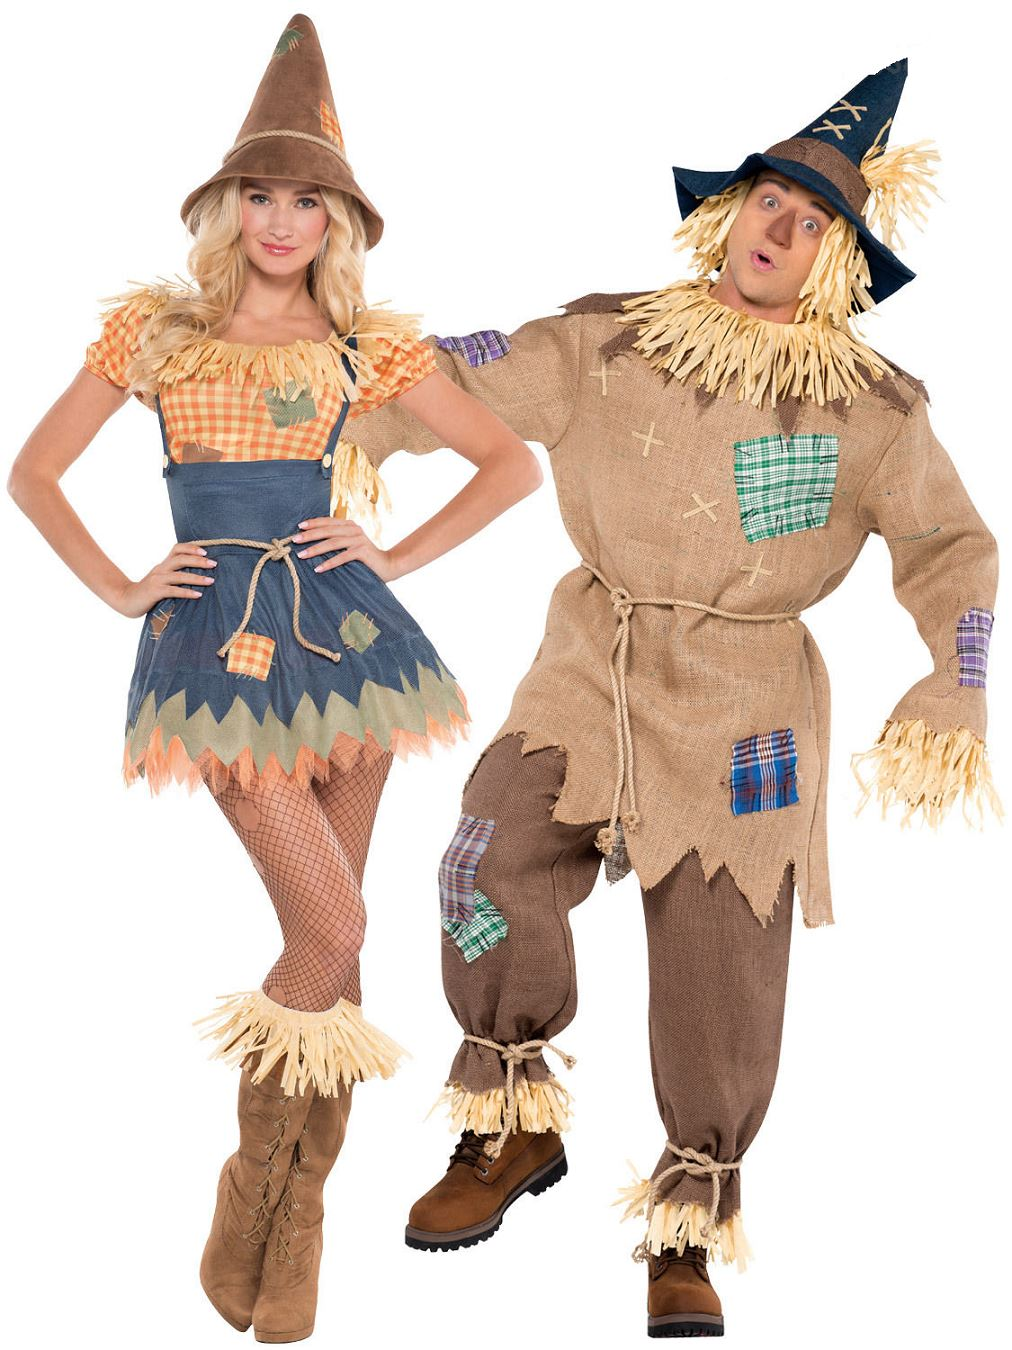 Amazoncom: adult costume wizard oz: Clothing, Shoes & Jewelry